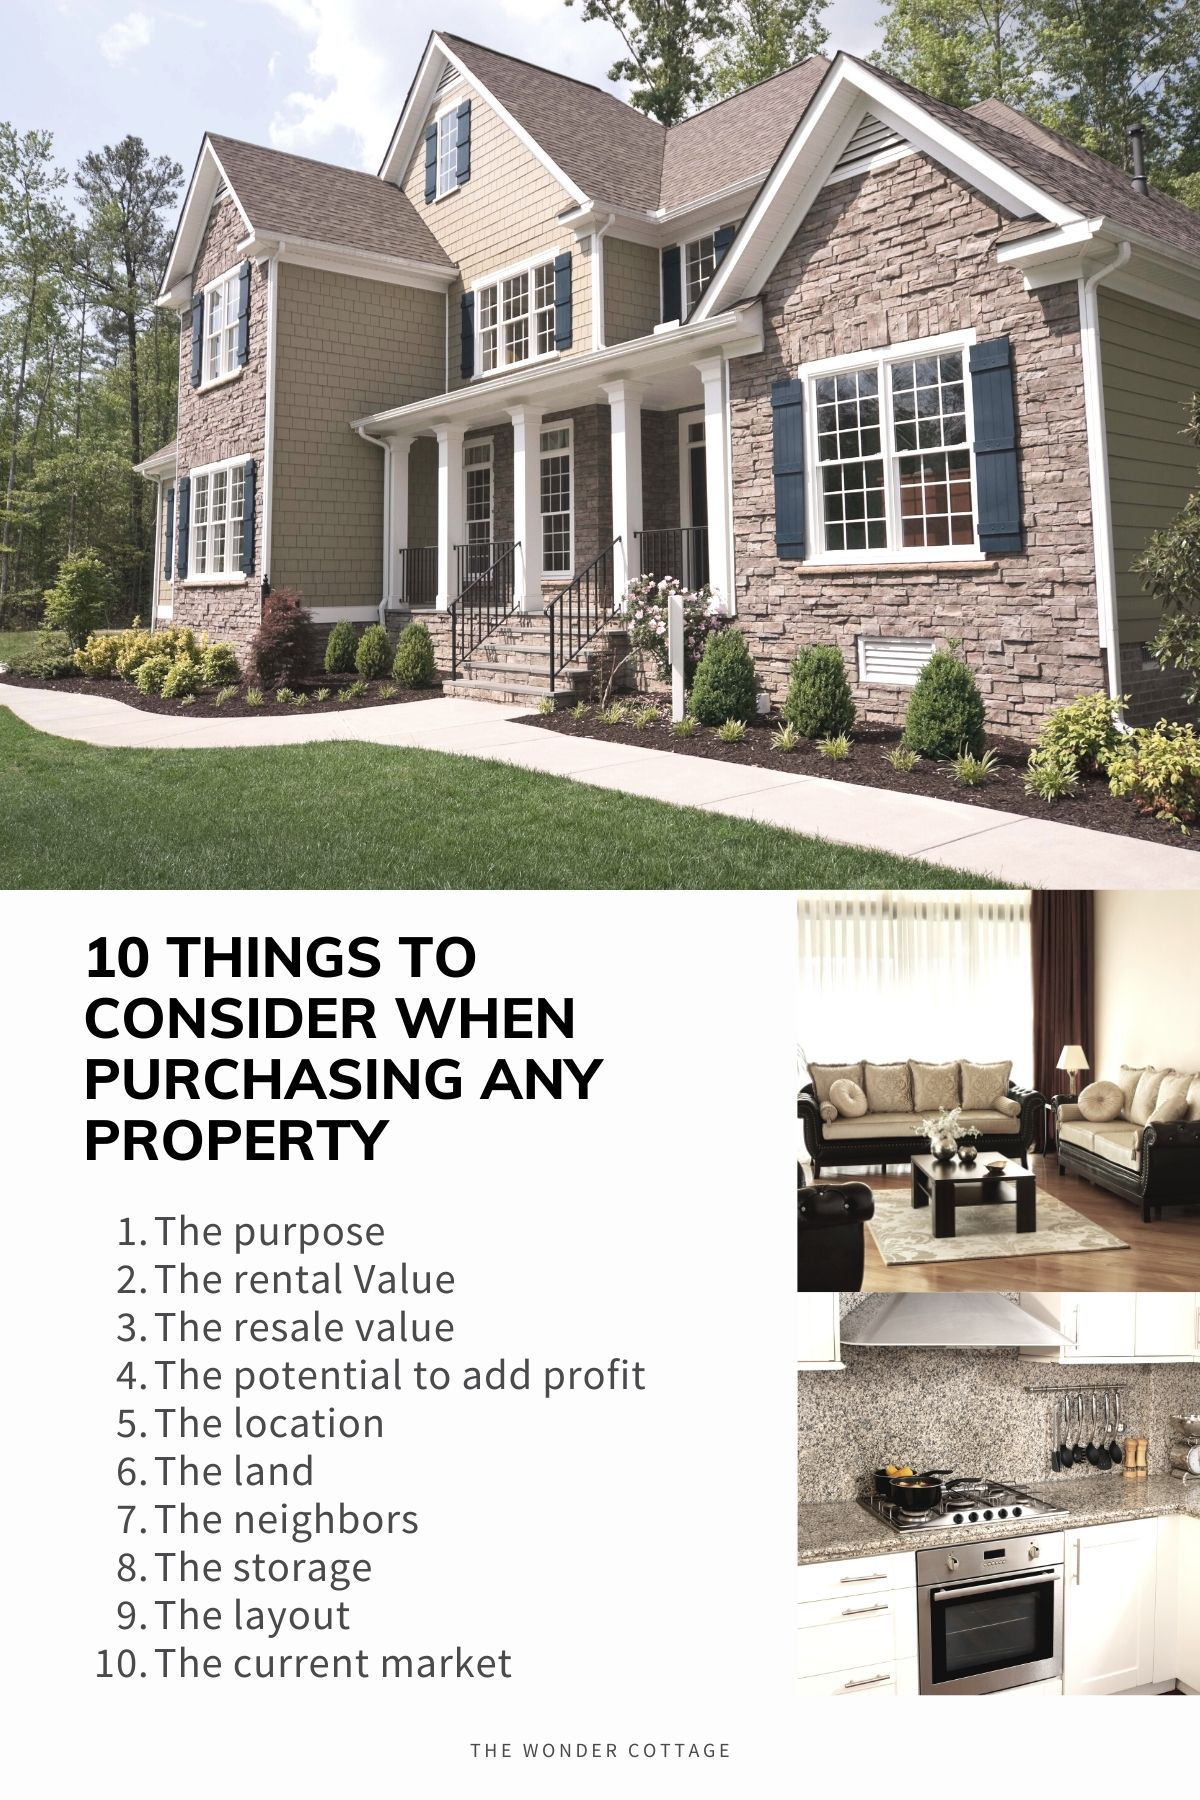 10 things to consider when purchasing property